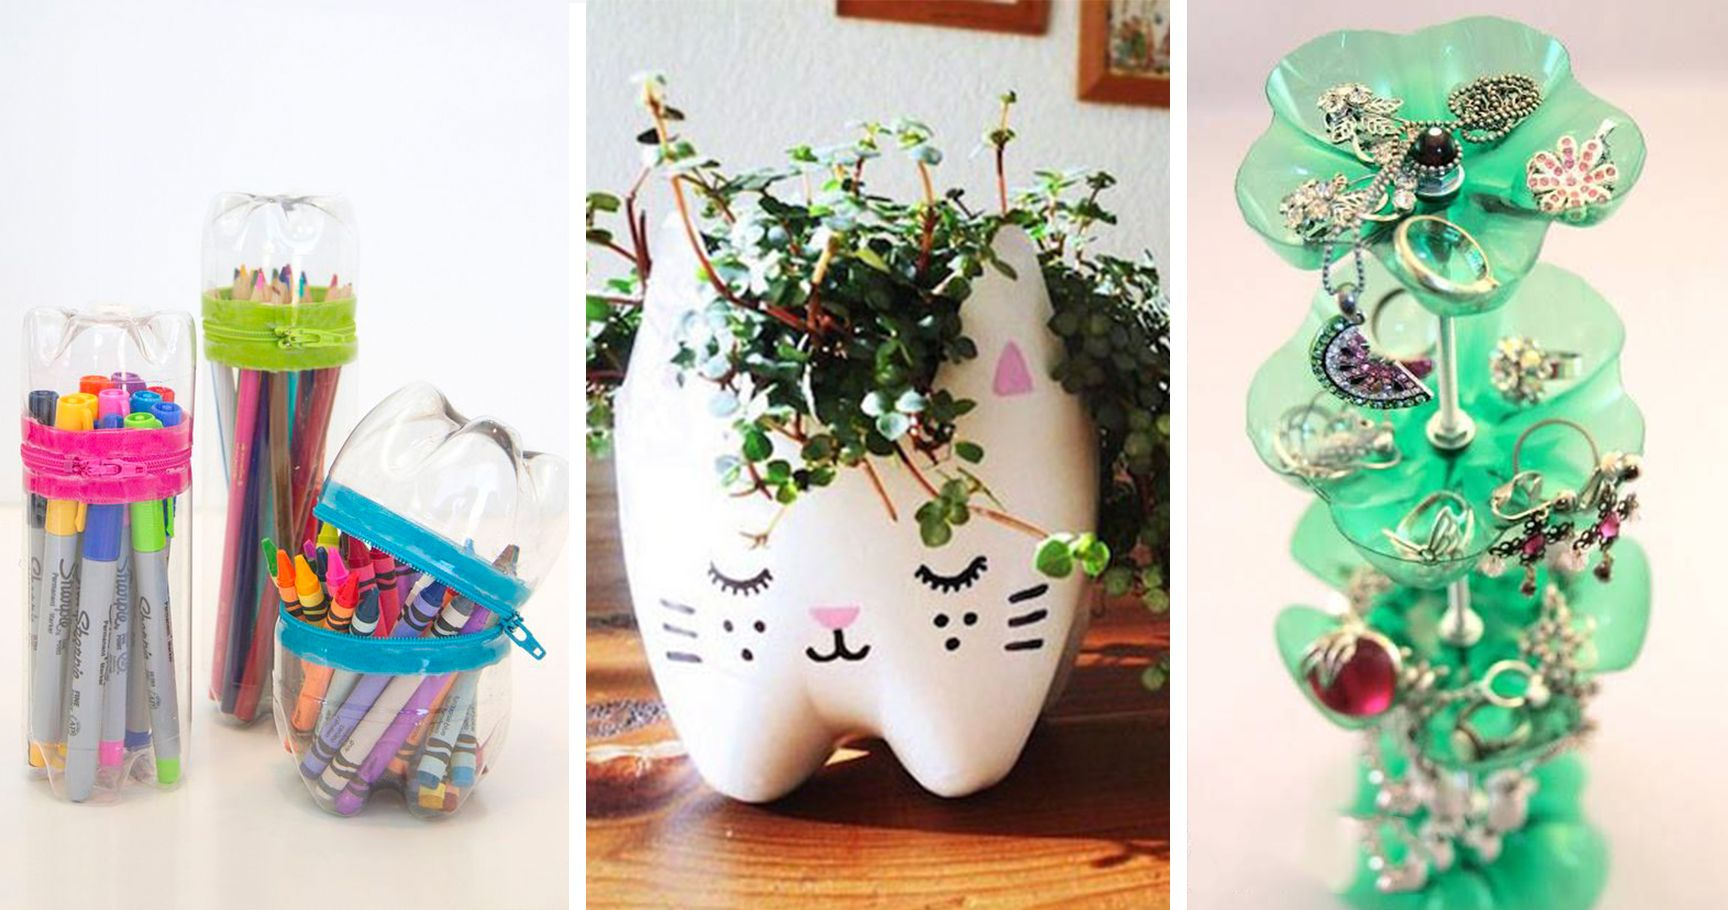 10 Creative DIY Projects To Reuse Plastic Bottles